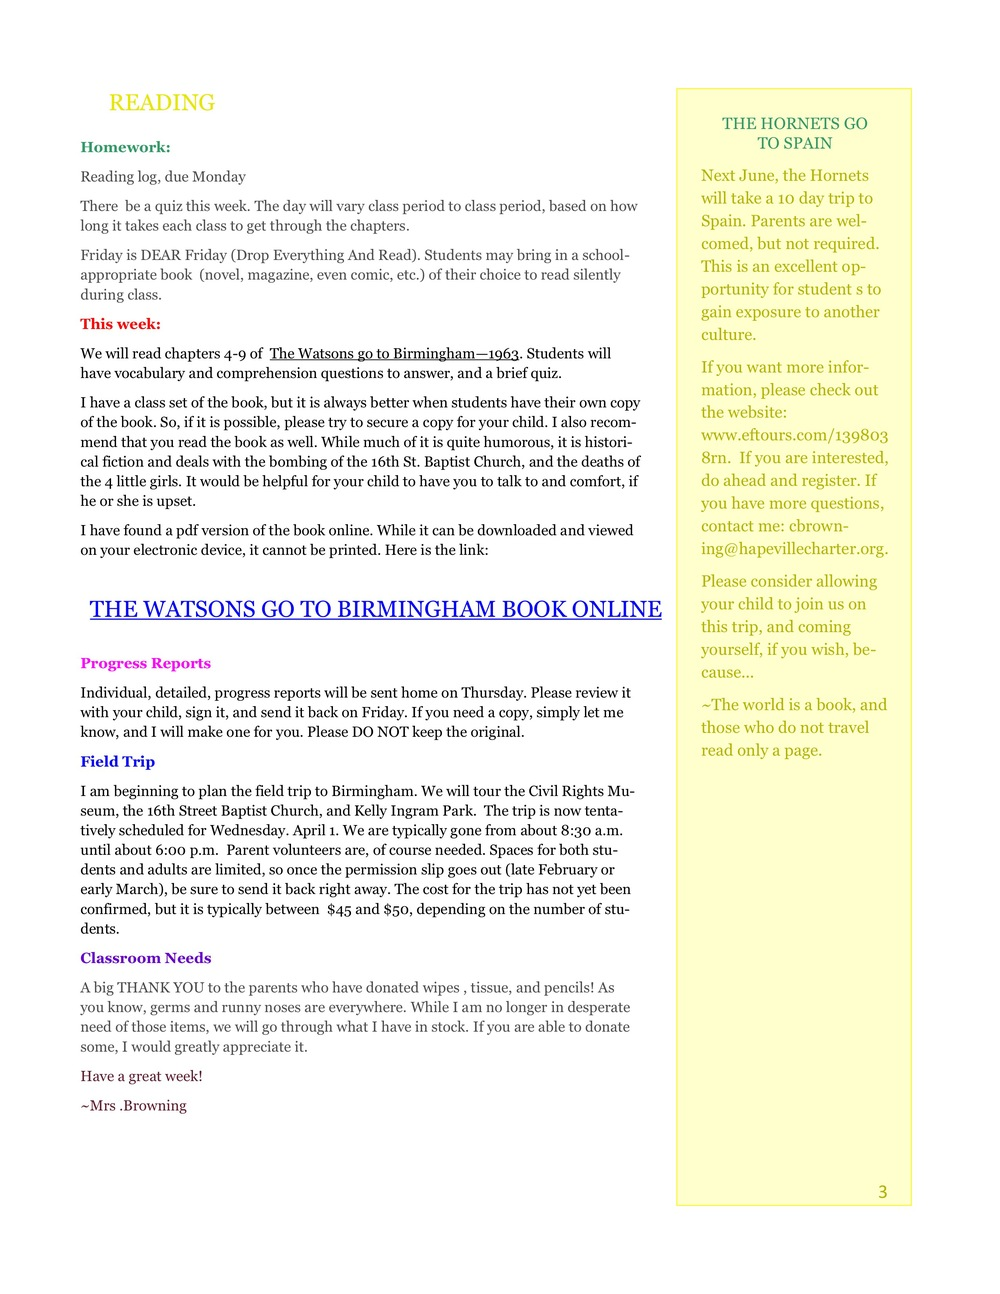 Newsletter Image6th grade January 26-30 3.jpeg